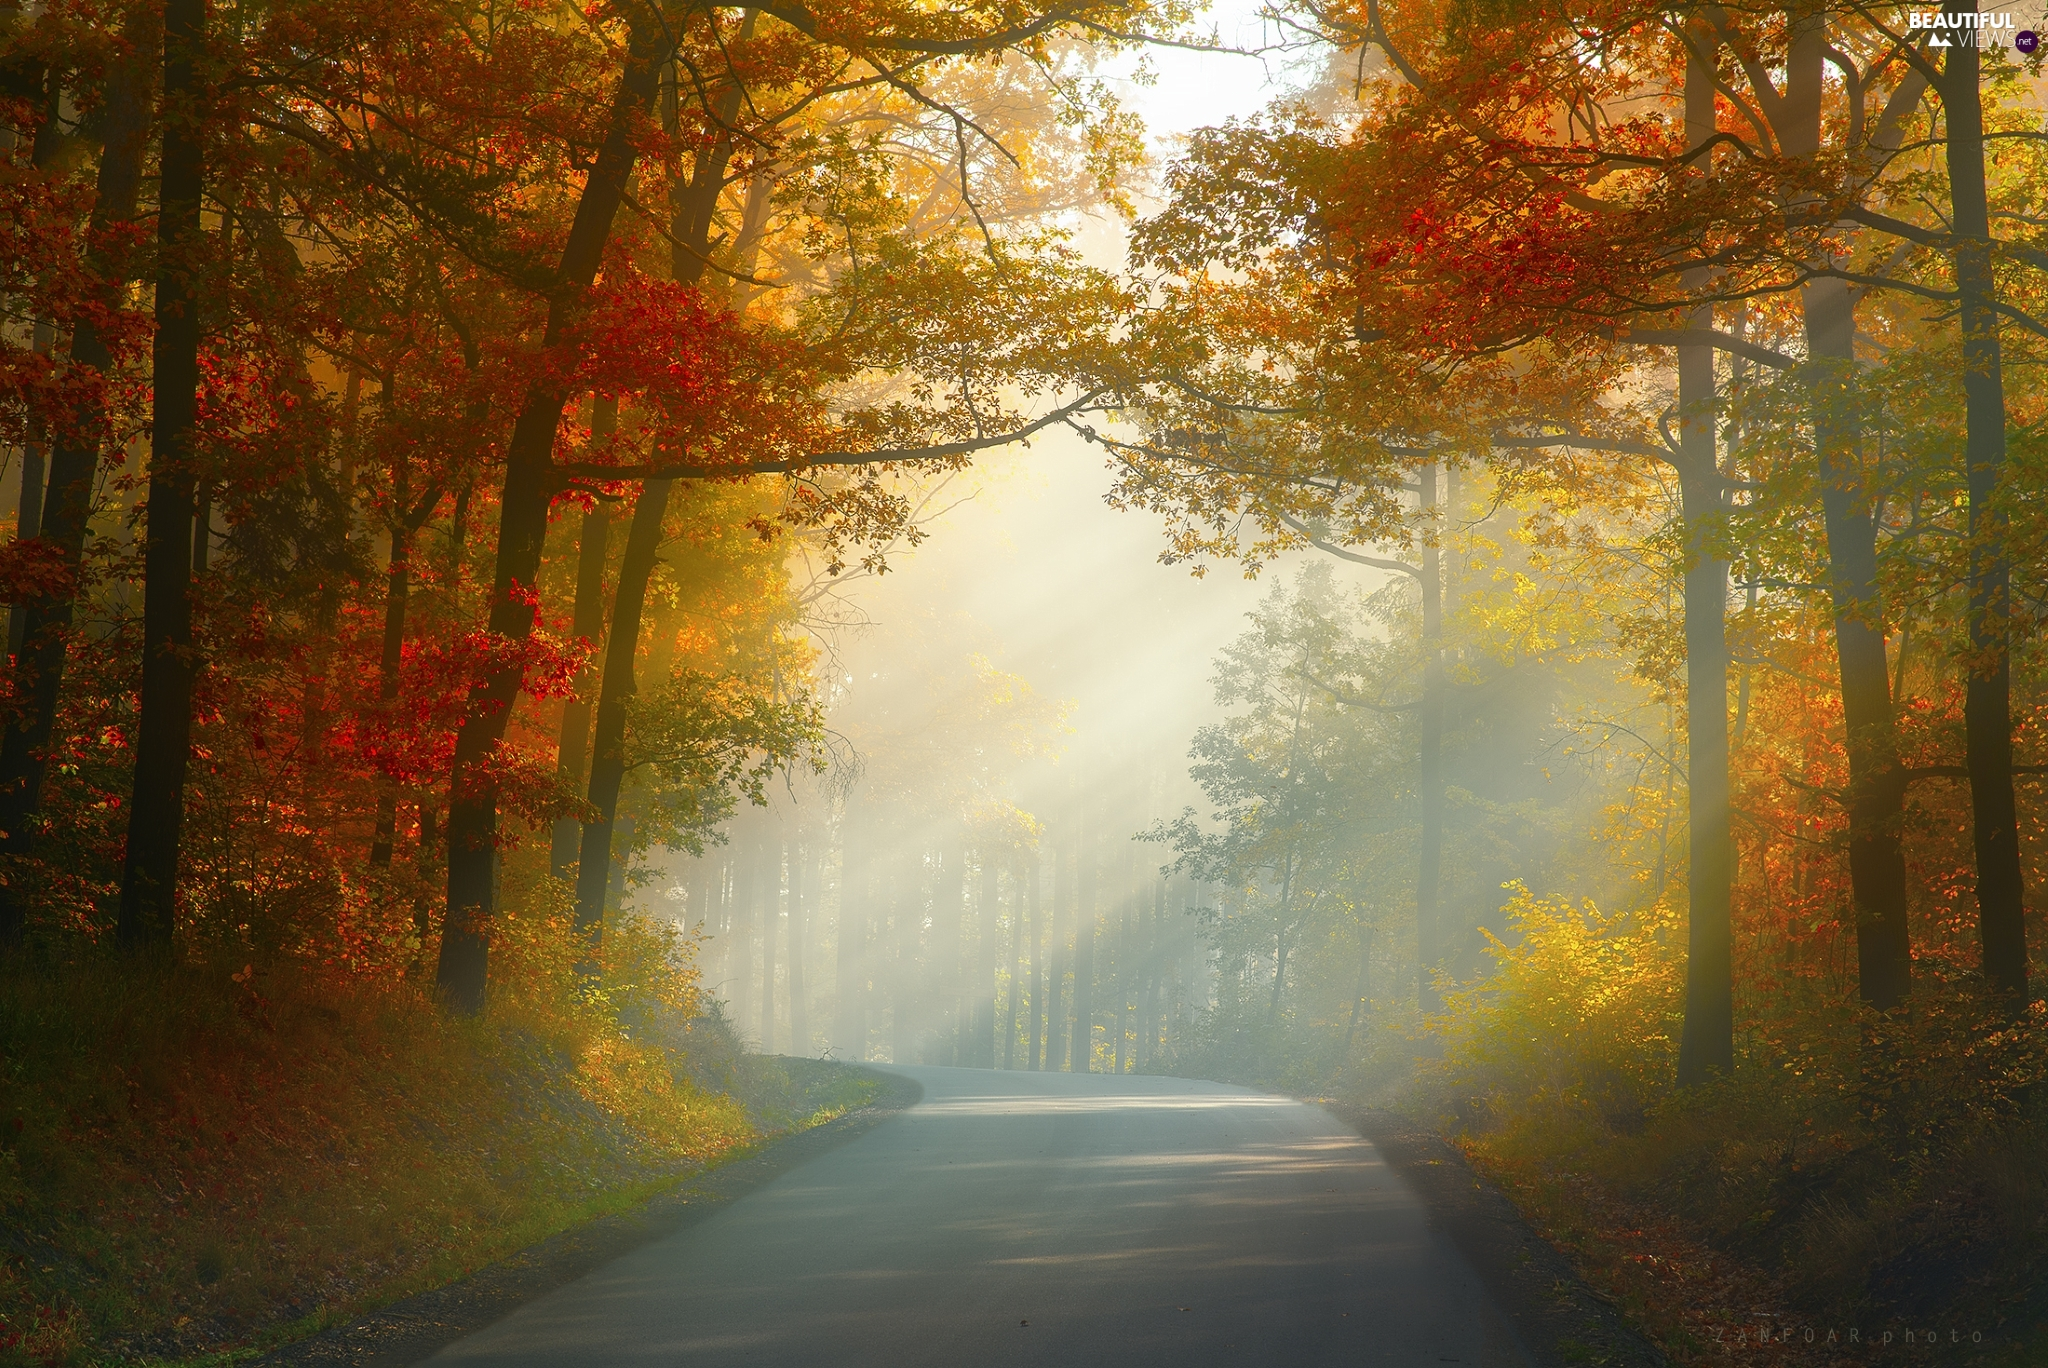 viewes, Way, light breaking through sky, autumn, forest, trees